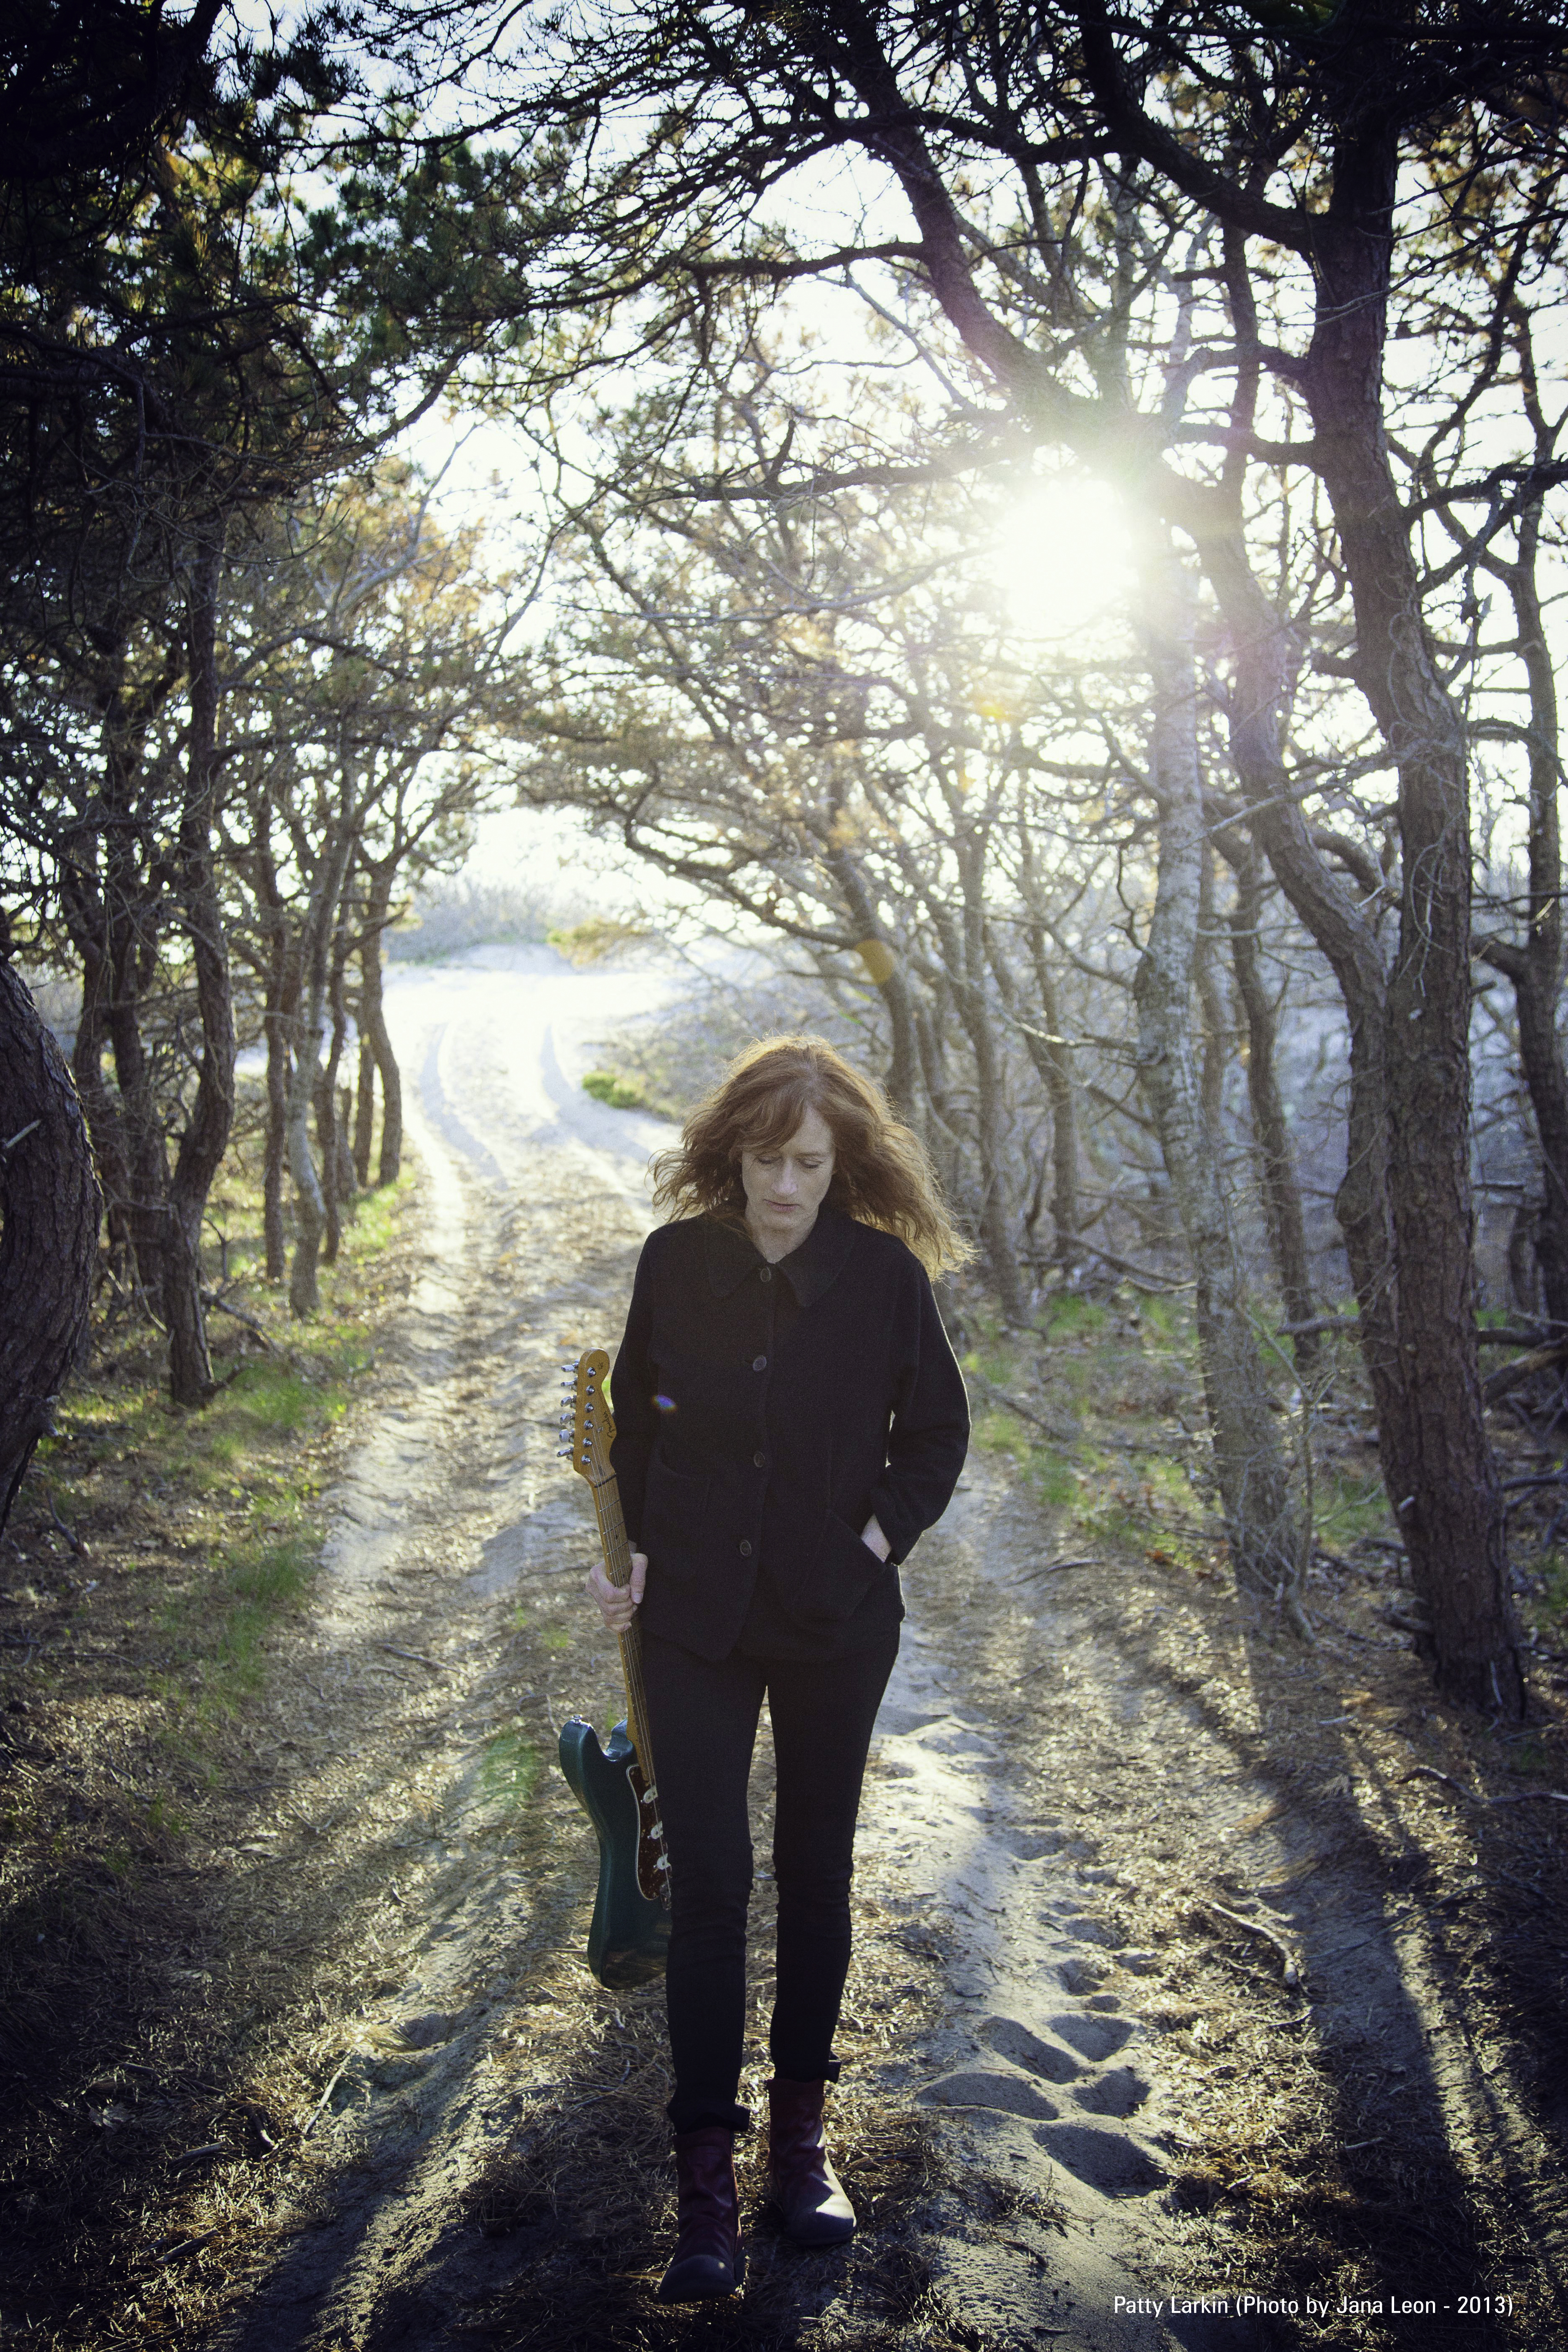 Patty Larkin - Publicity Images - 2013